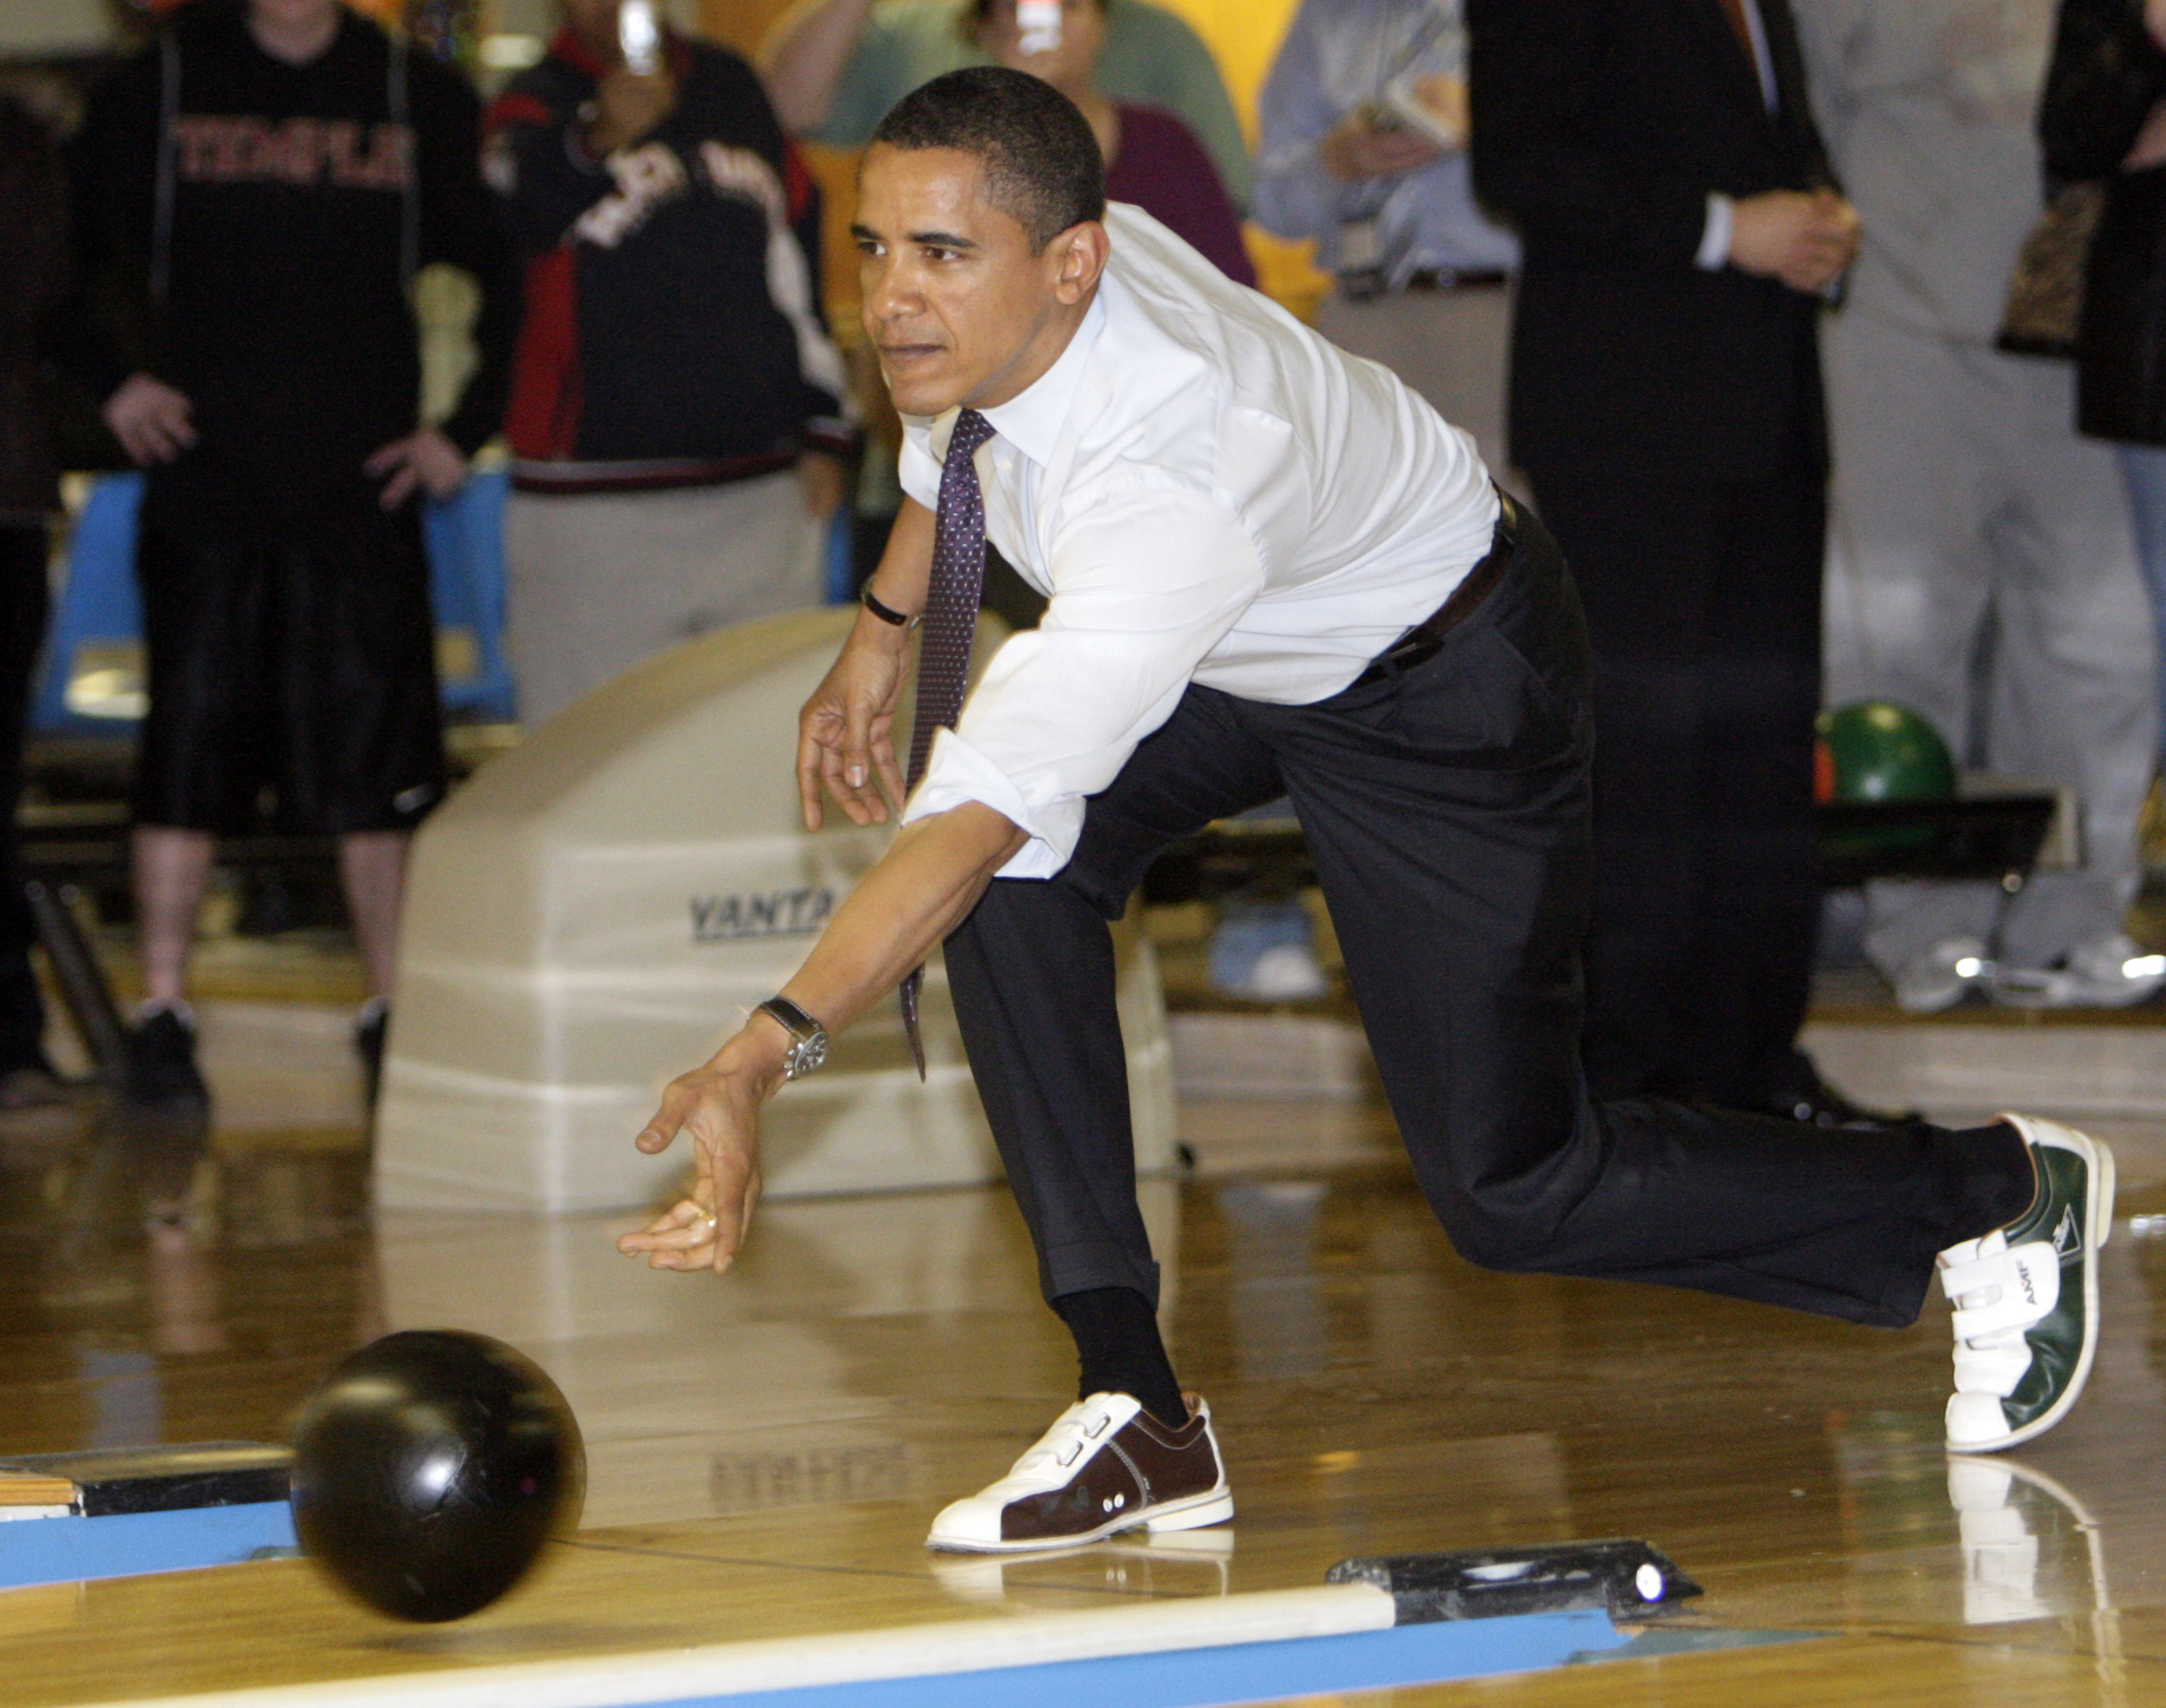 White House plans for bowling alley upgrades abruptly cancelled